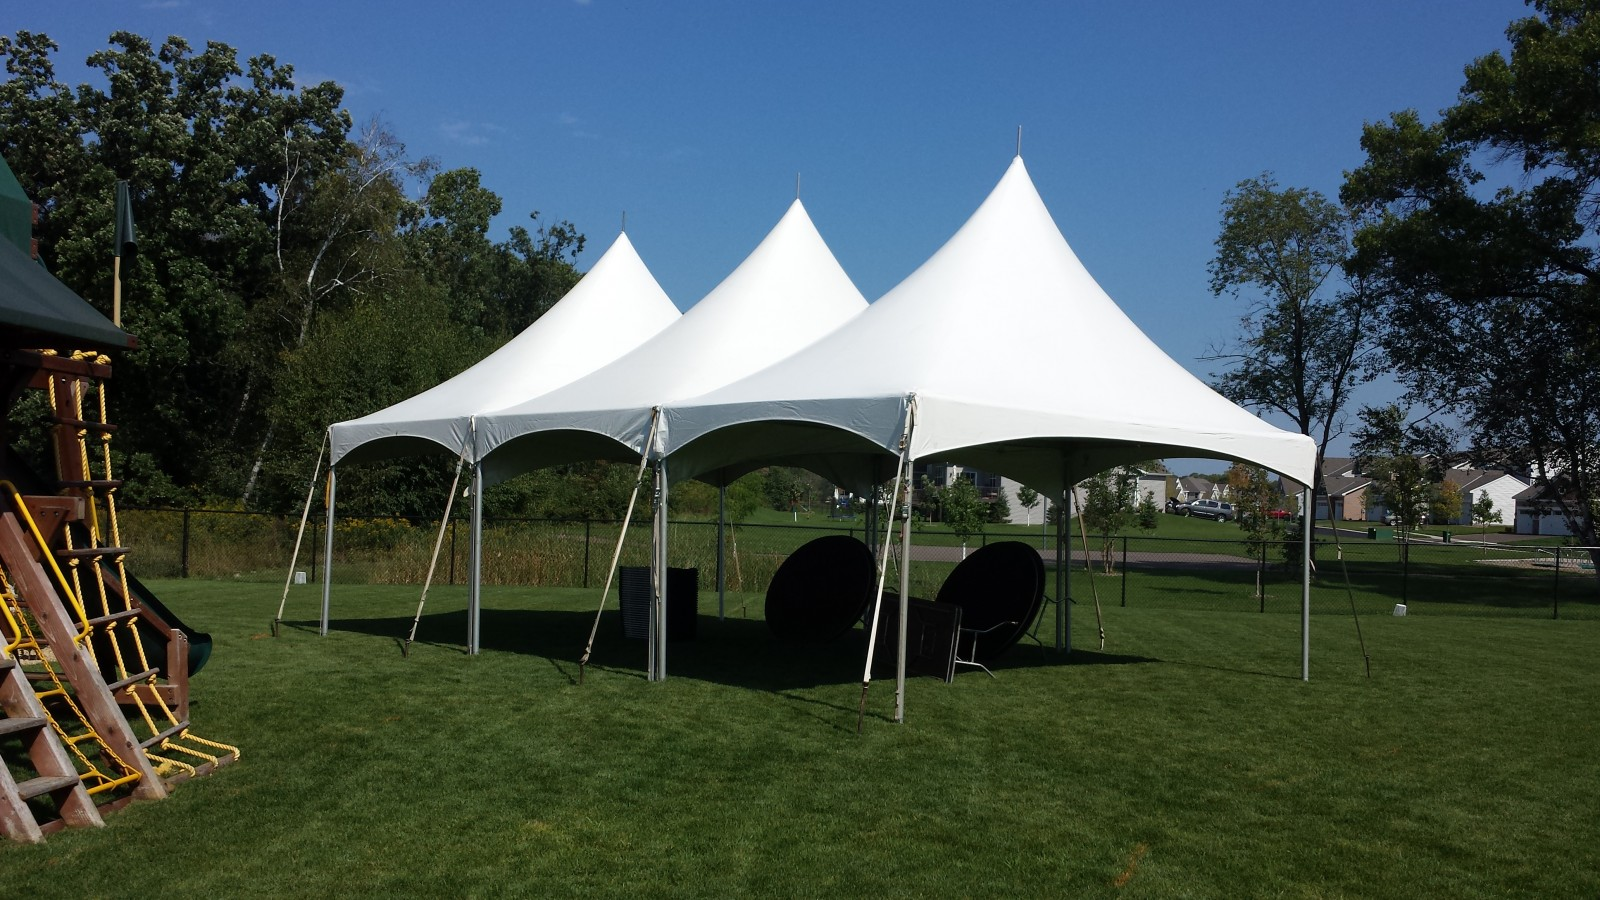 60' x 20' Tent Rental for graduation party or wedding